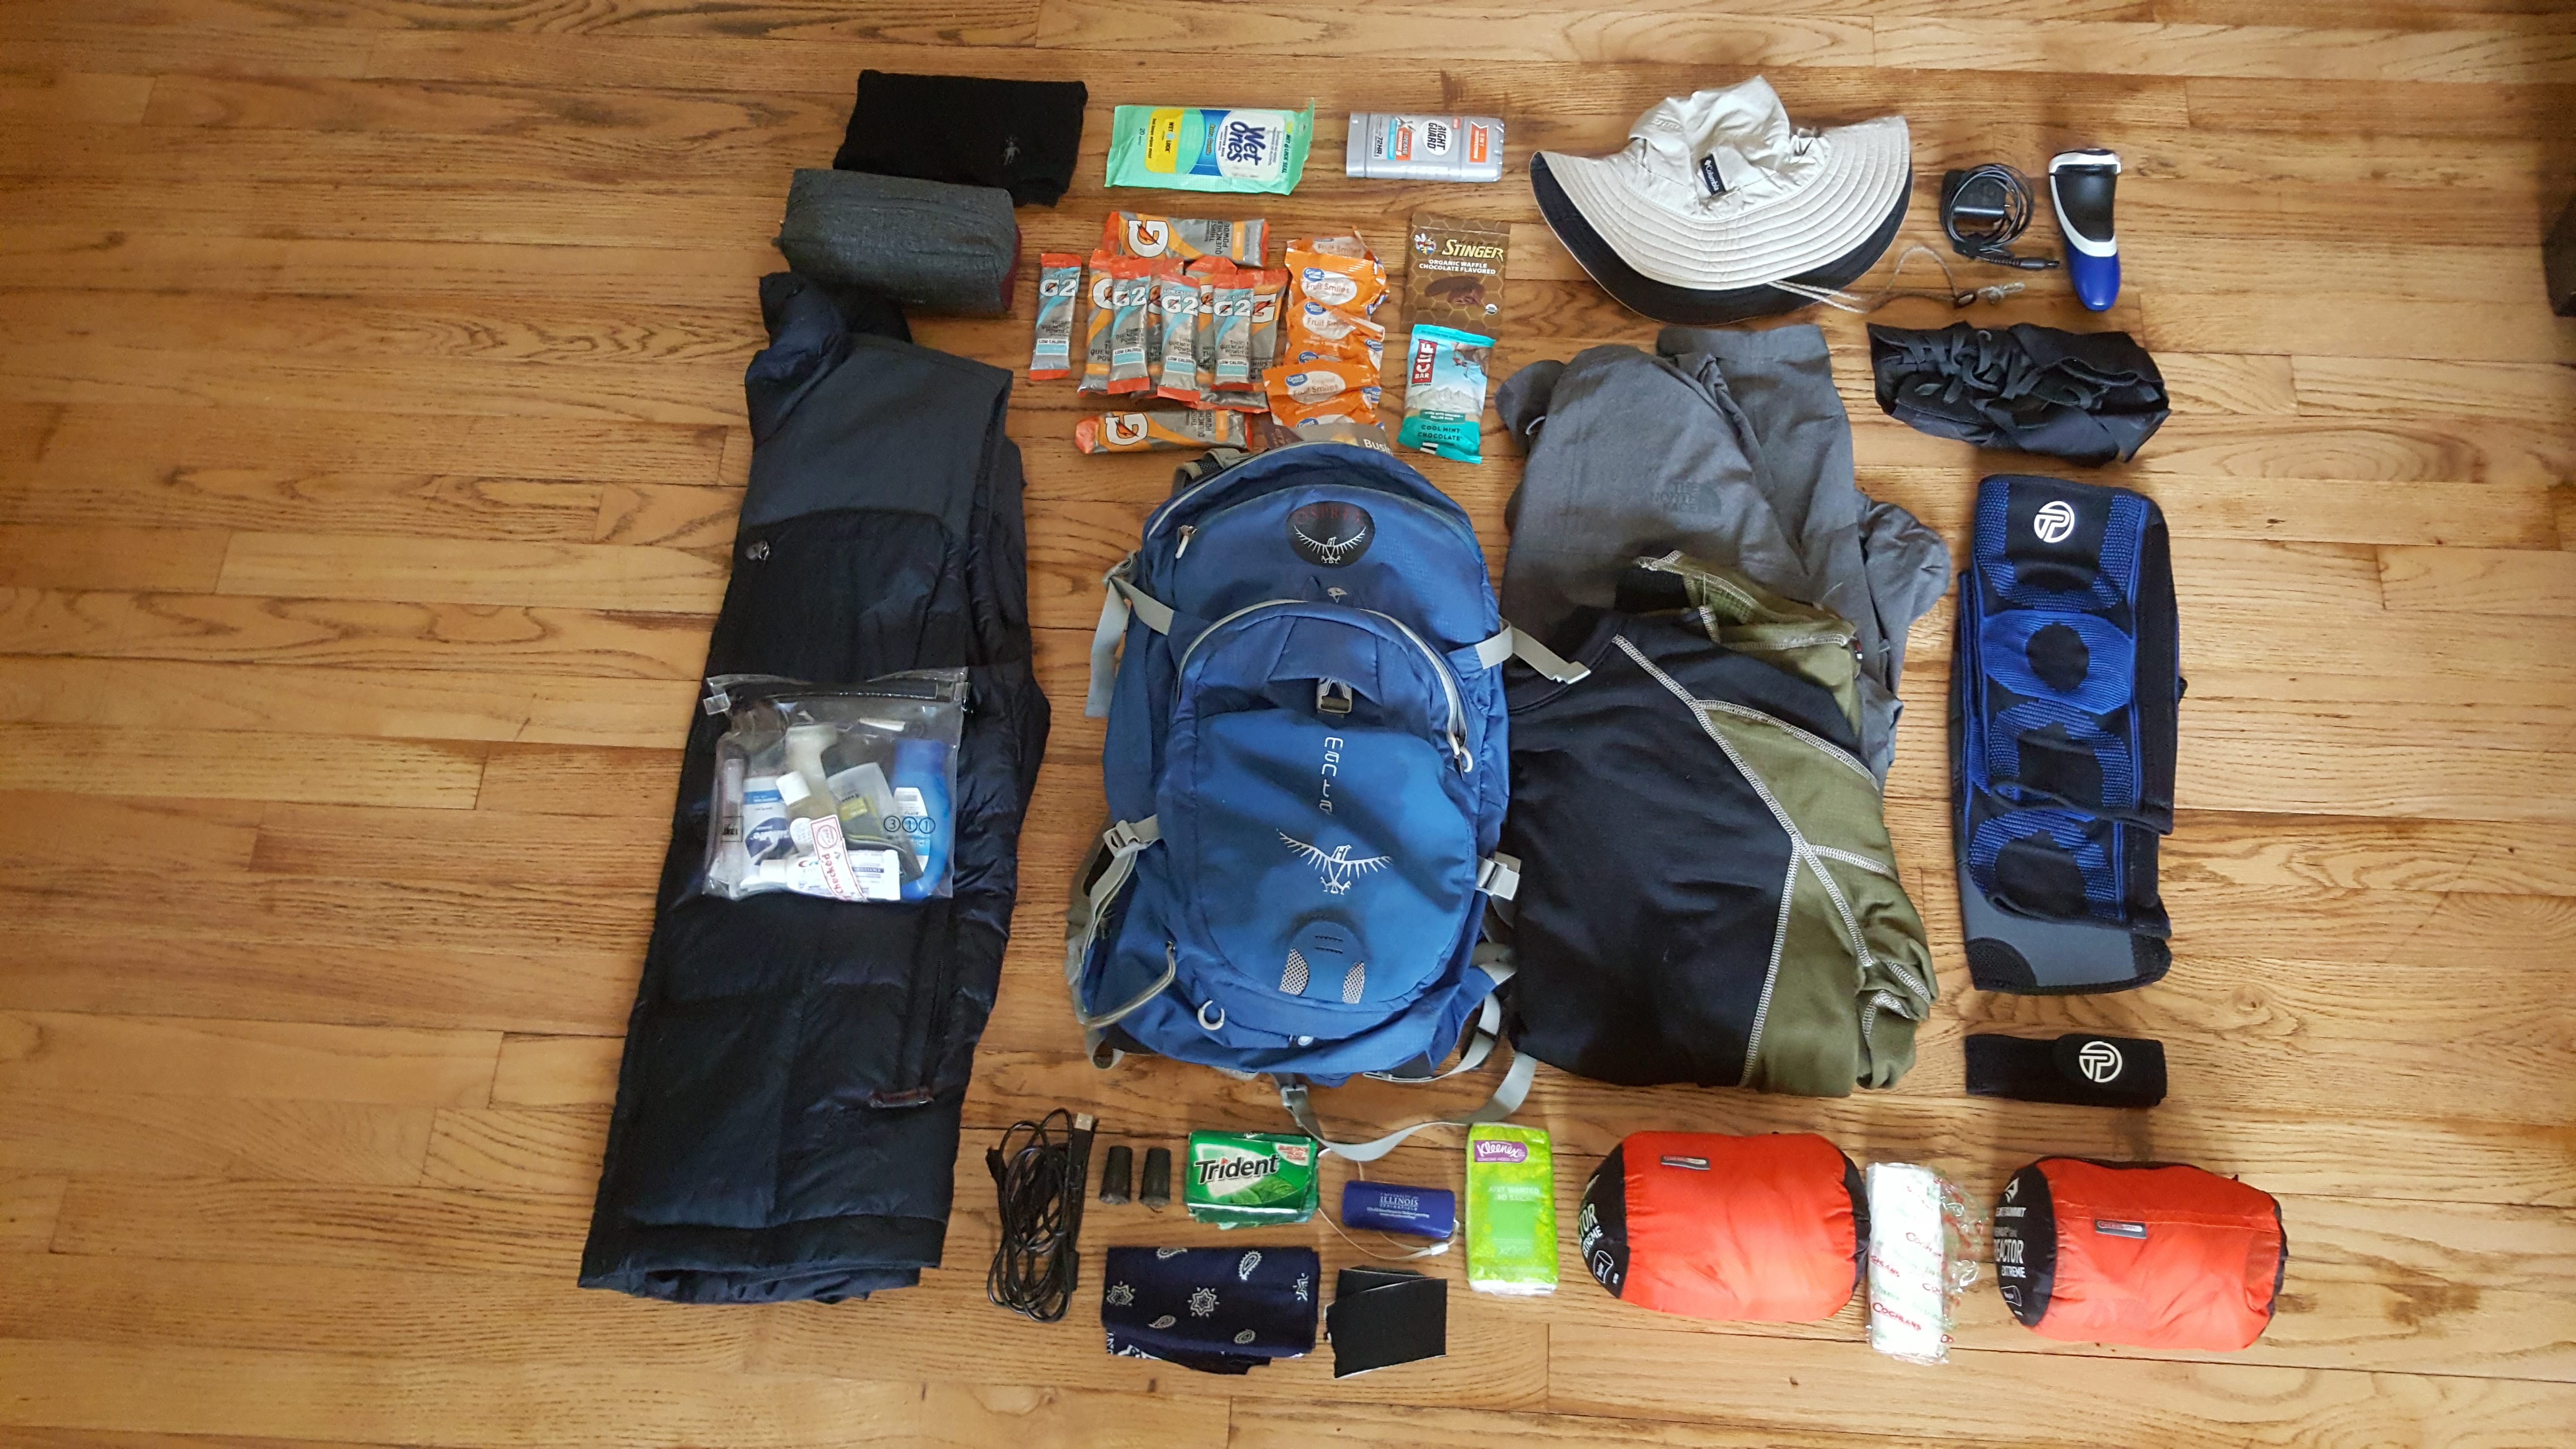 Small blue backpack laid out on floor with items unpacked and surrounding it in an orderly fashion.